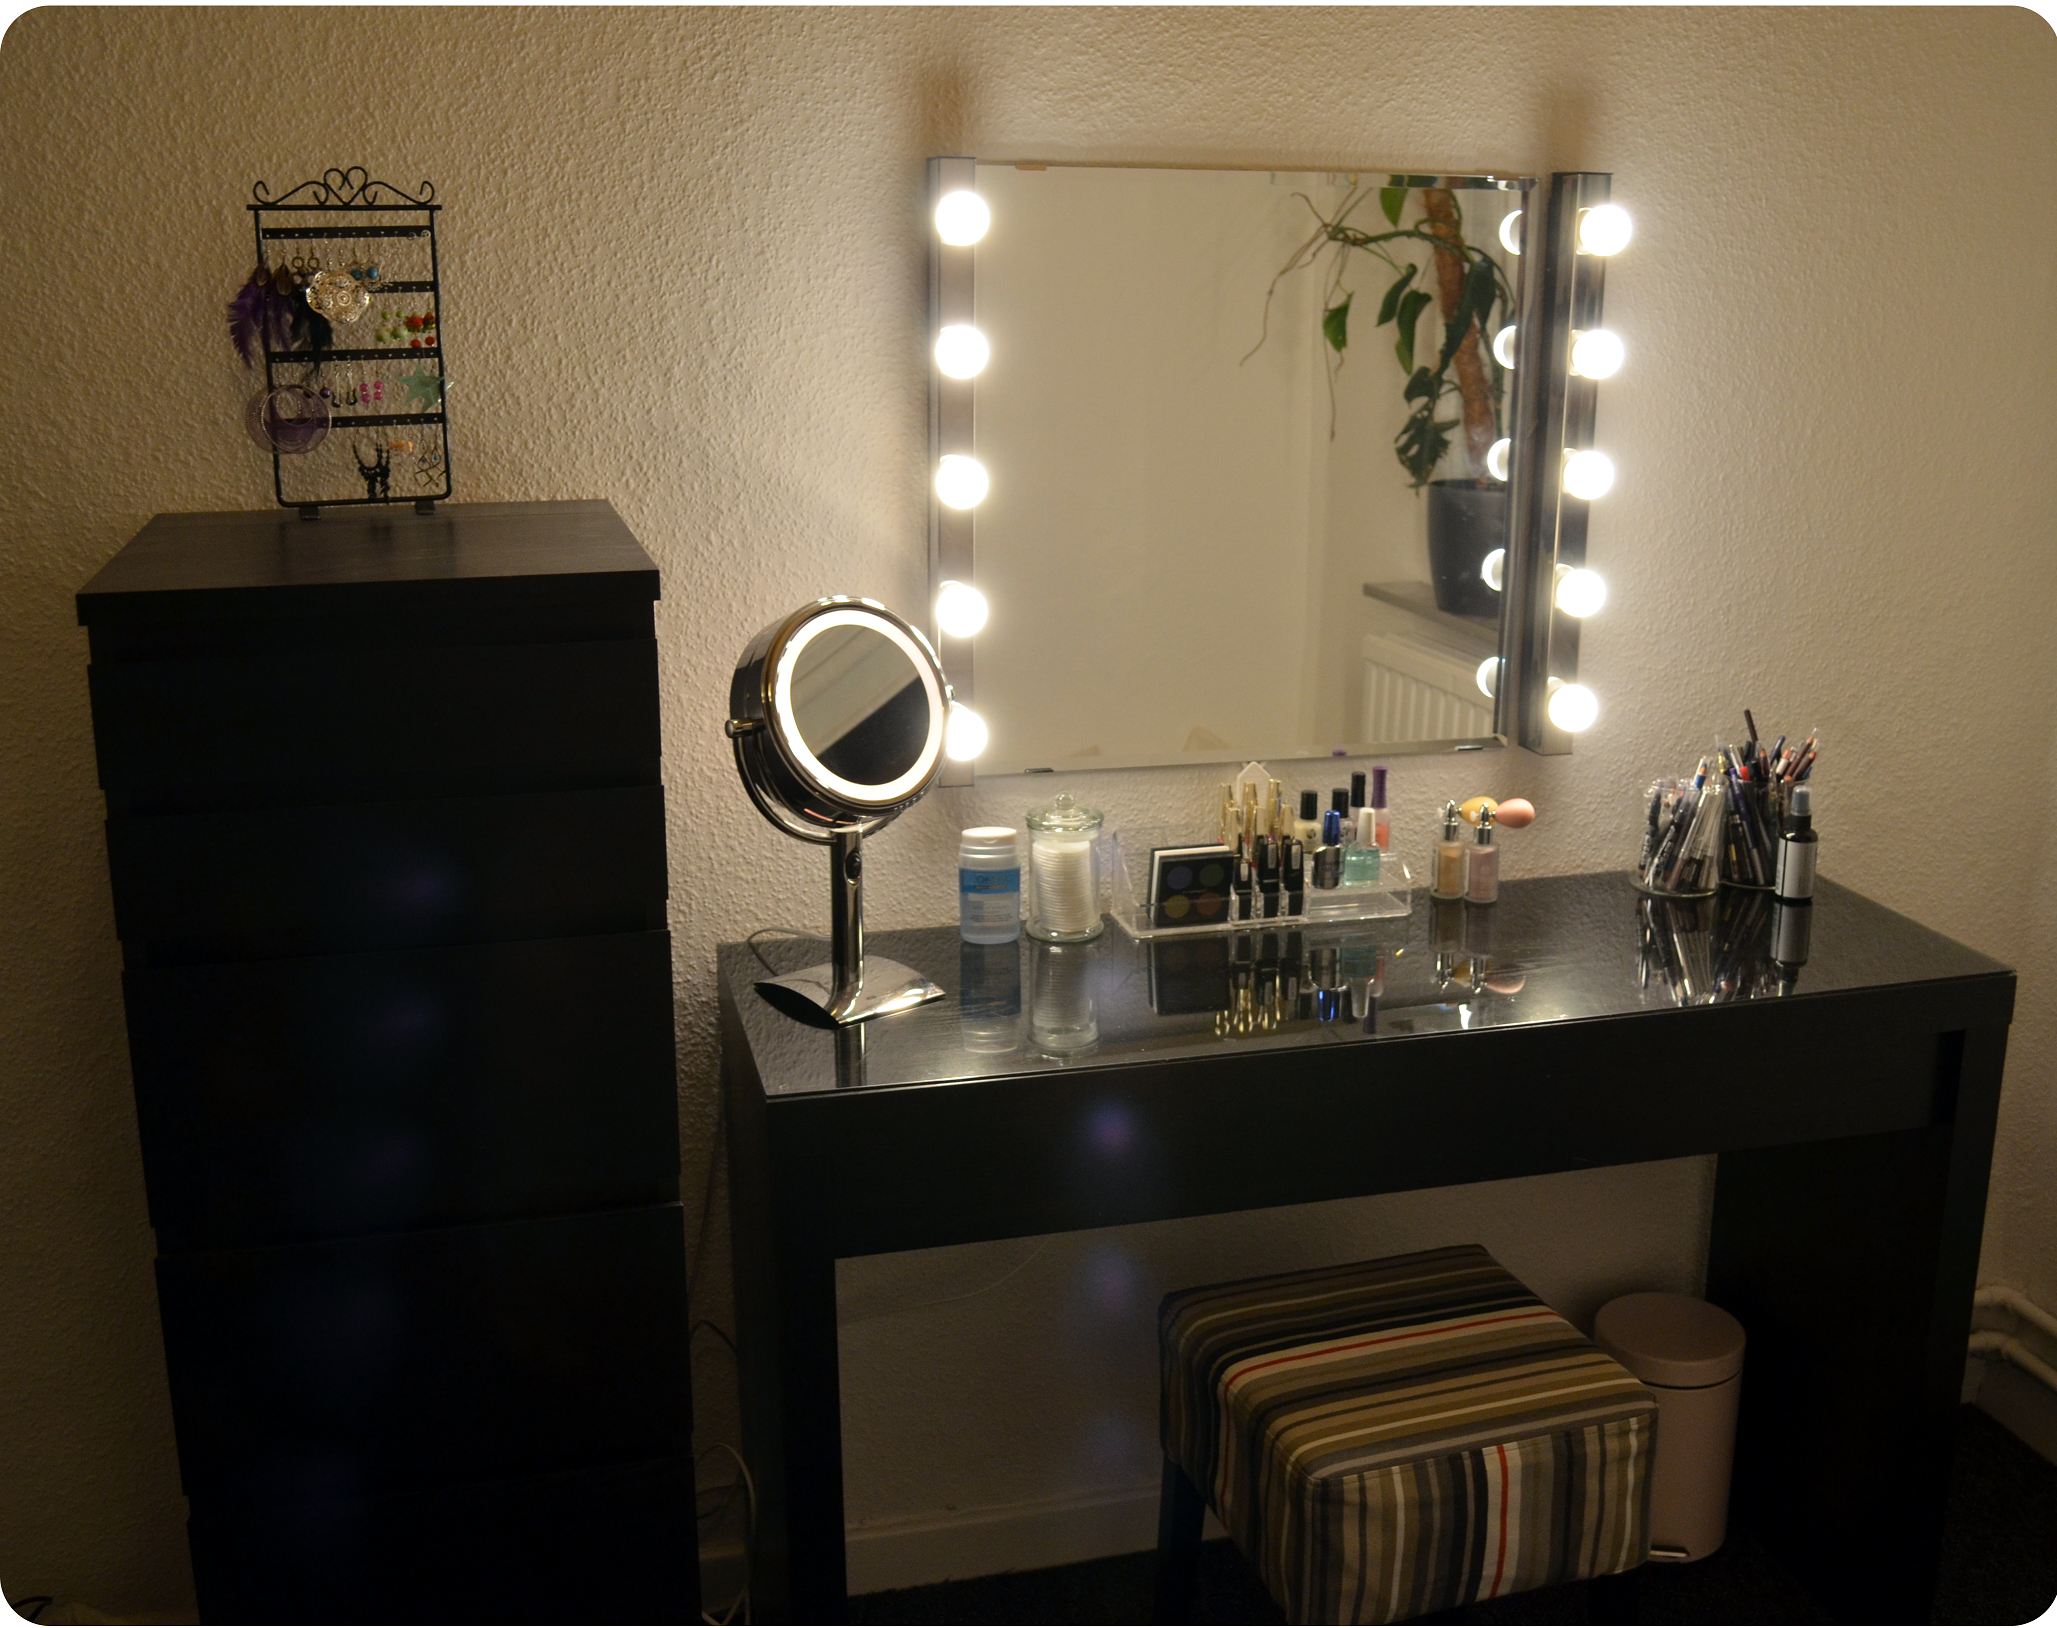 ideas lights height decorating image vanity light makeup above ikea bathroom size